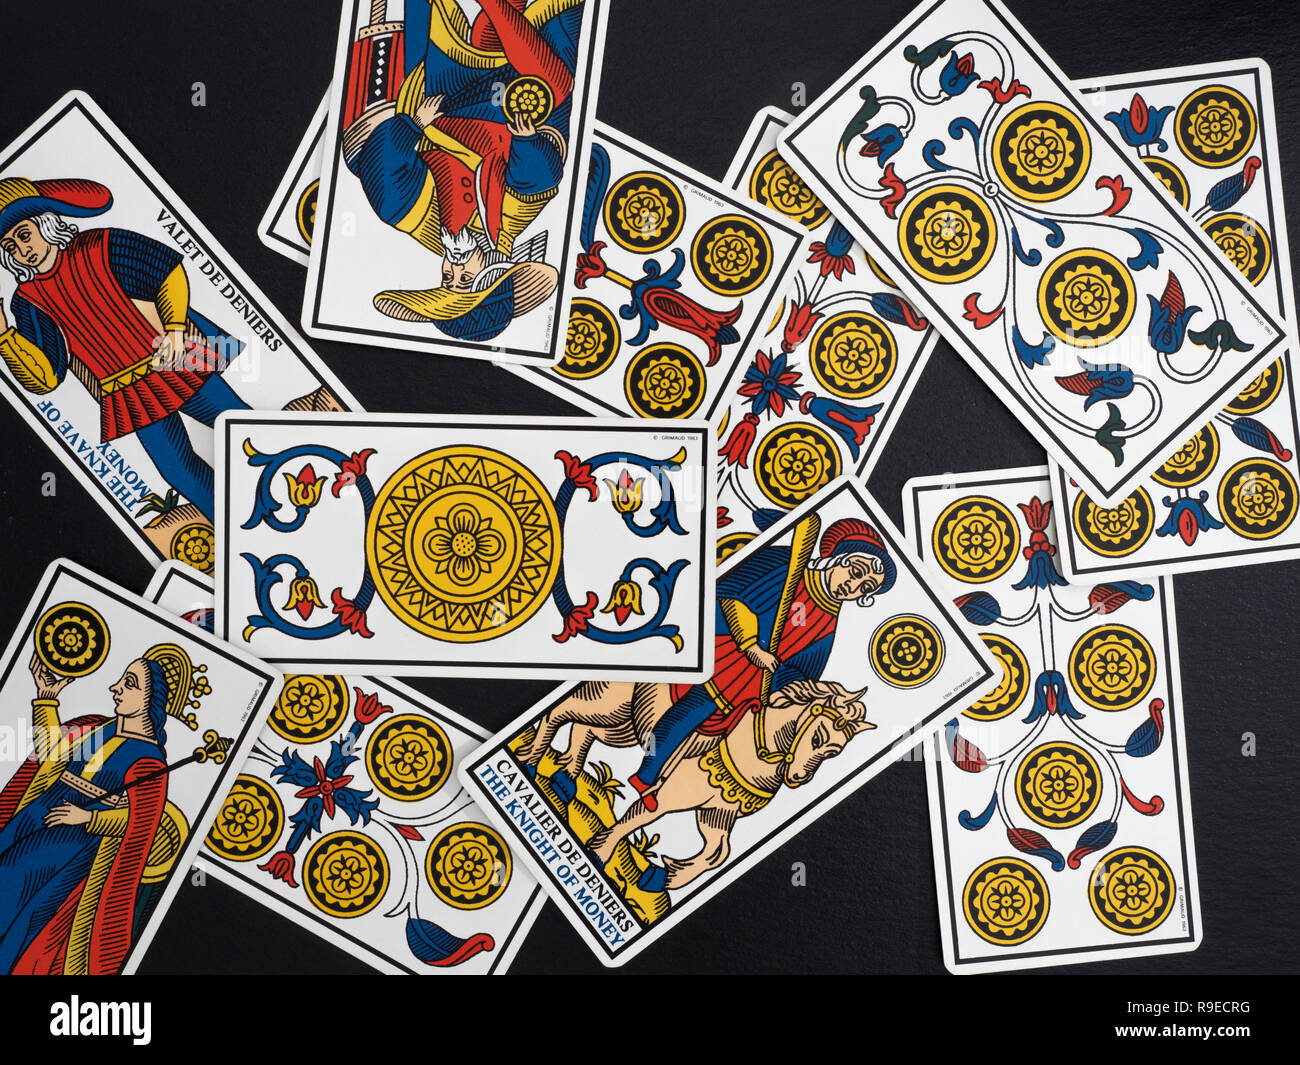 Tarot Card Knight Stock Photos & Tarot Card Knight Stock